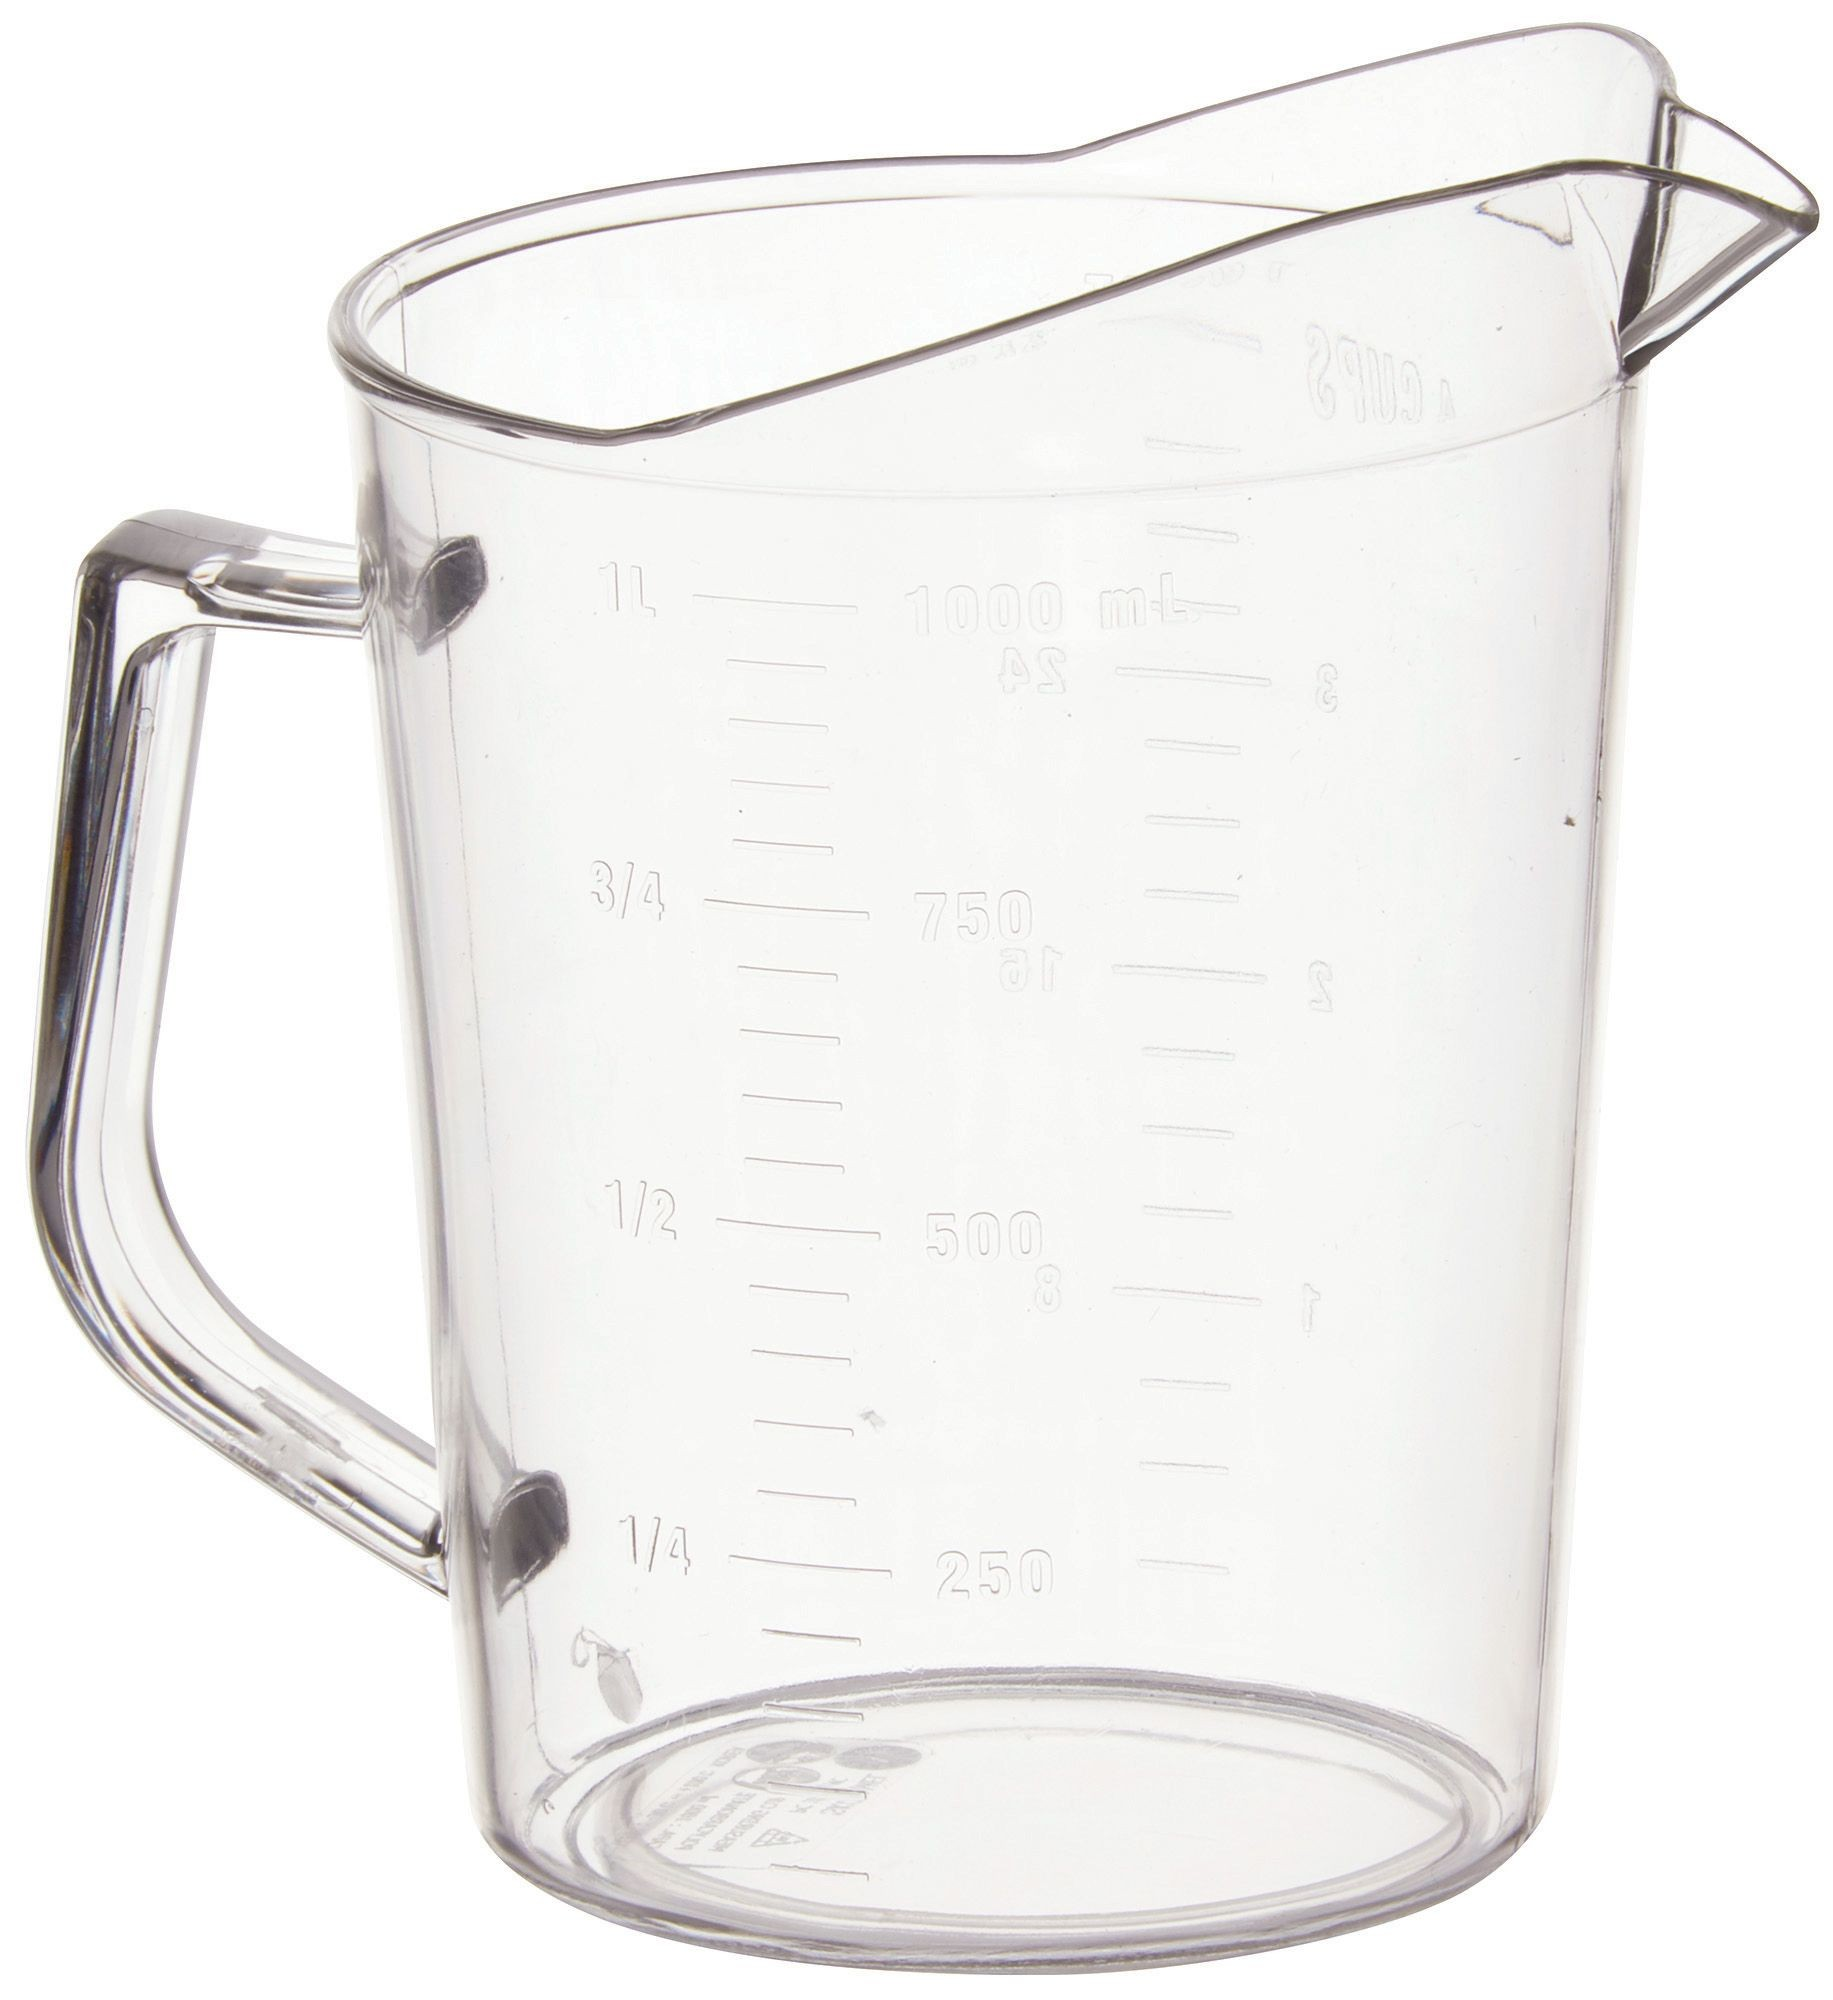 Winco PMU-100 Polycarbonate 1 Qt. Measuring Cup